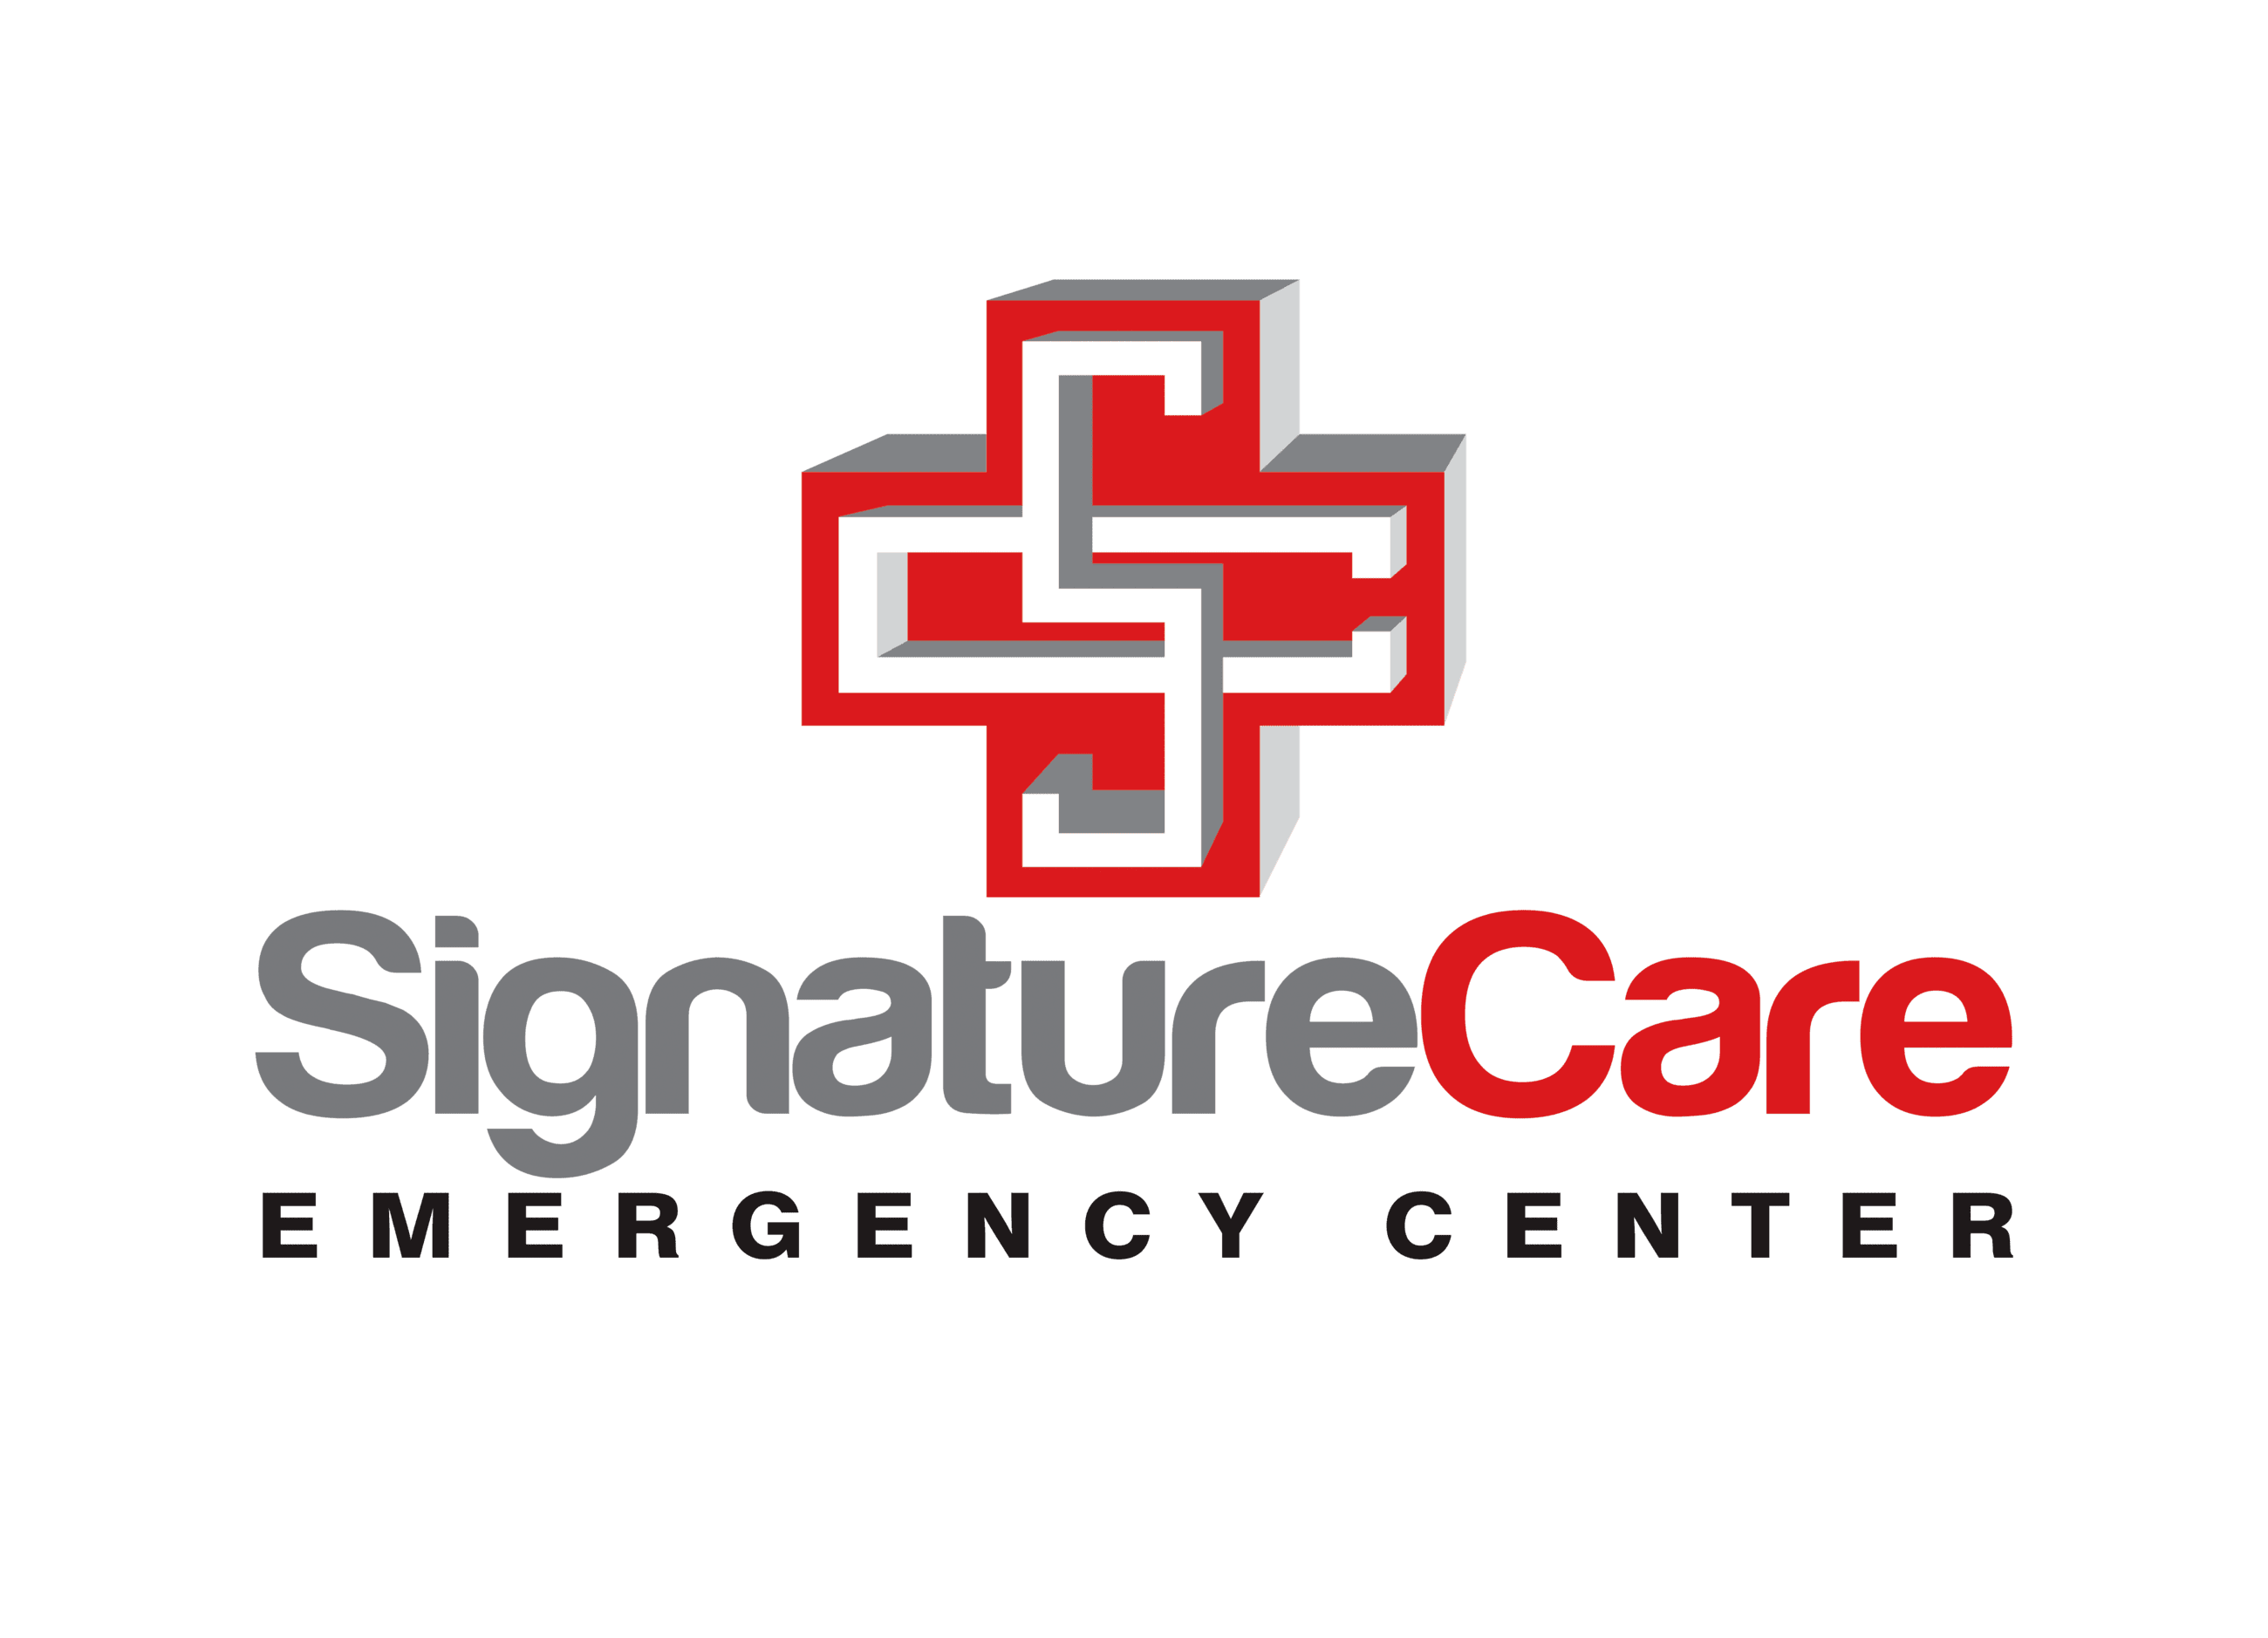 Signature Care Verticle Opens in new window